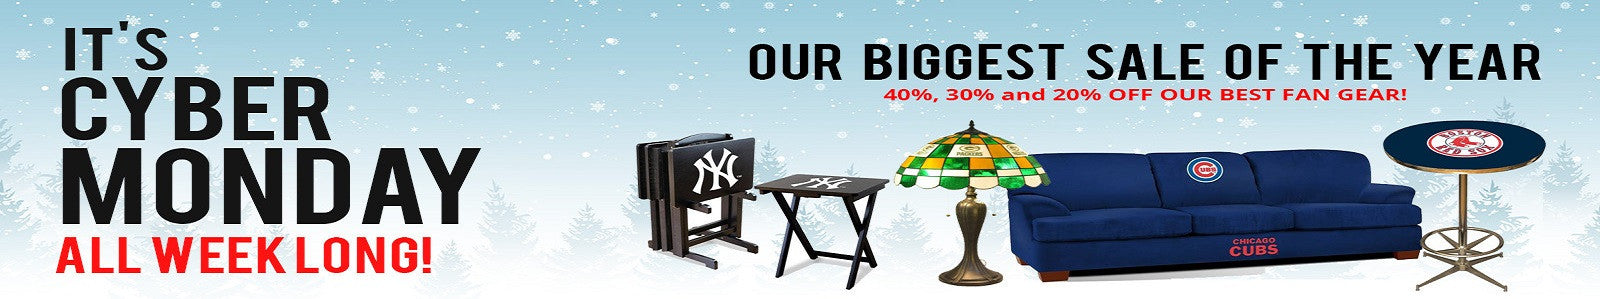 Complete your man cave with licensed sports gear for your home, car or office!